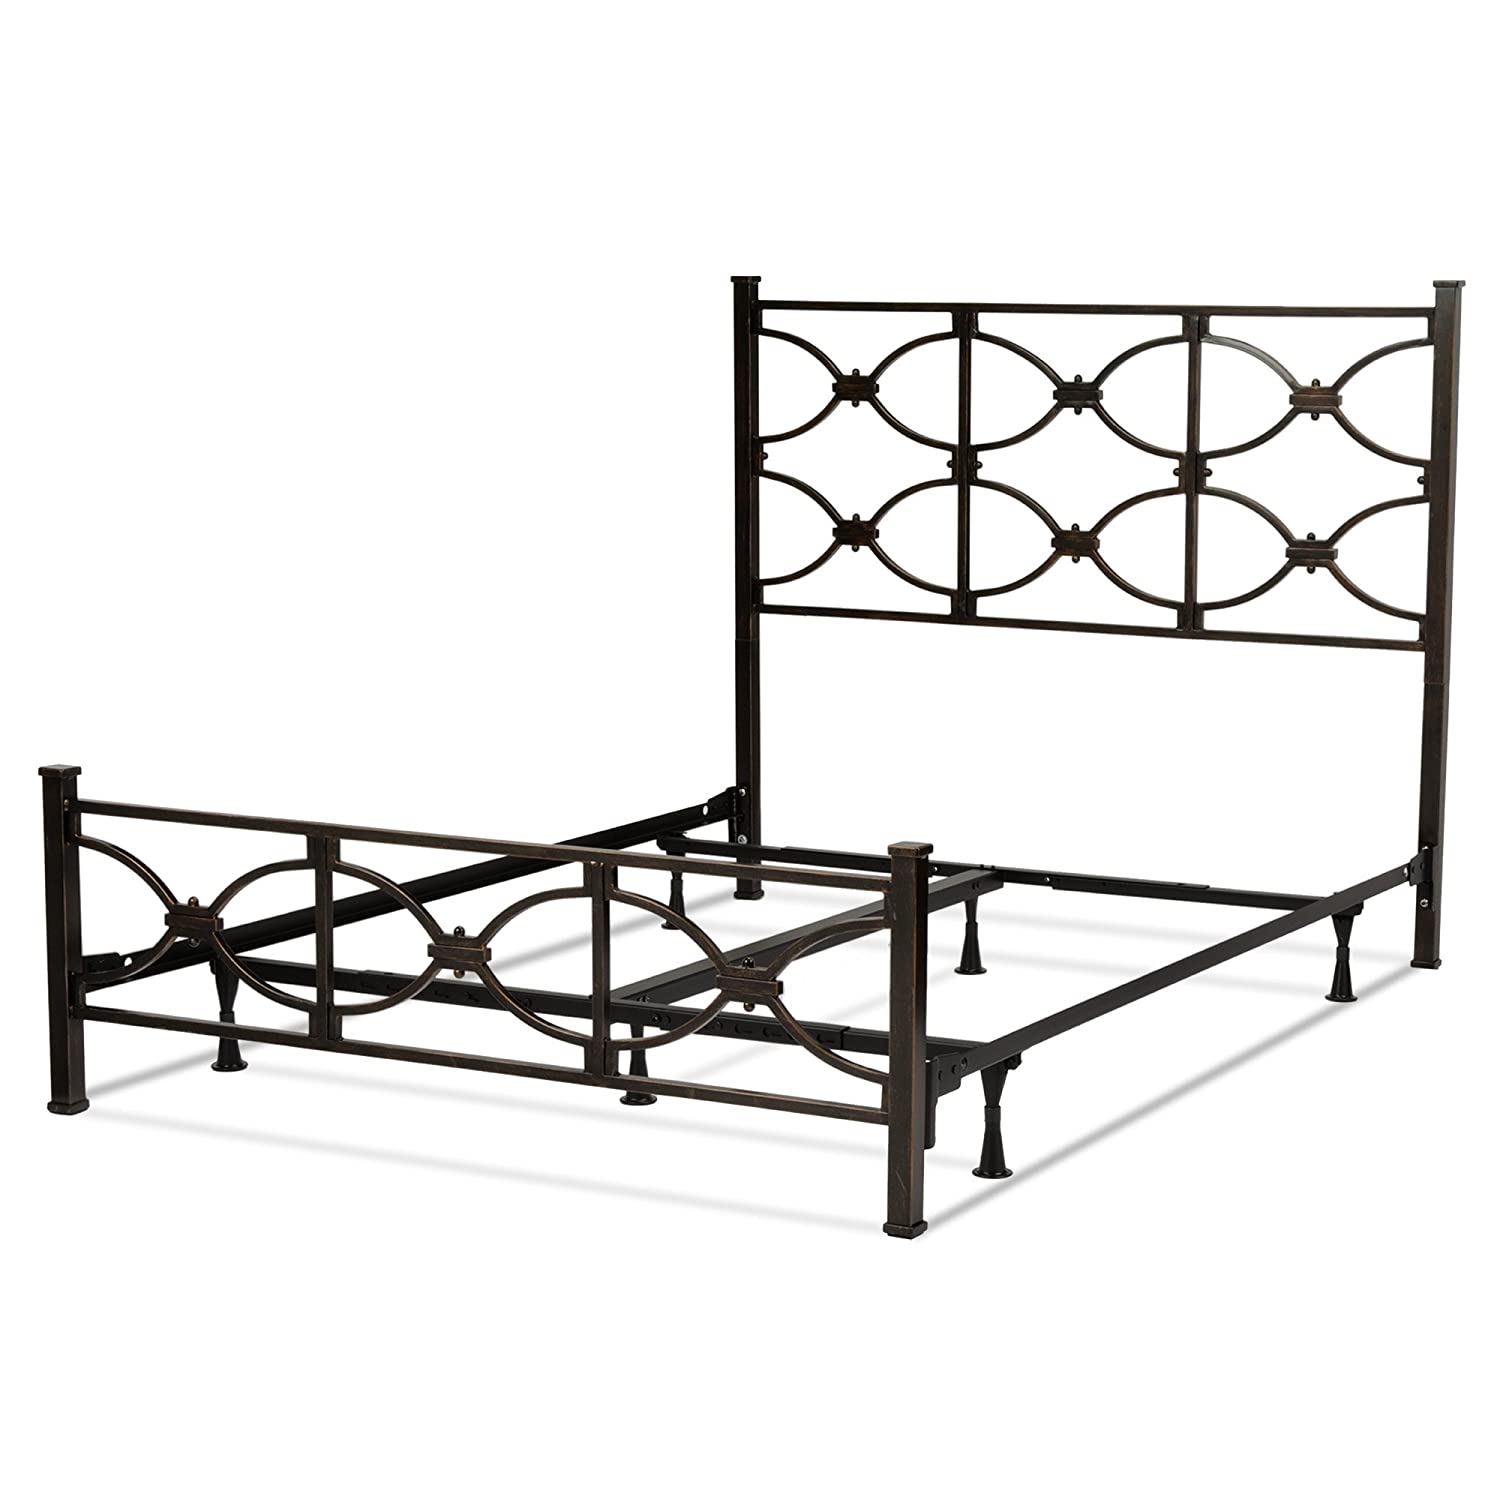 Marlo Complete Bed with Metal Panels and Squared Finial Posts, Burnished Black Finish, Full Fashion Bed Group B11474